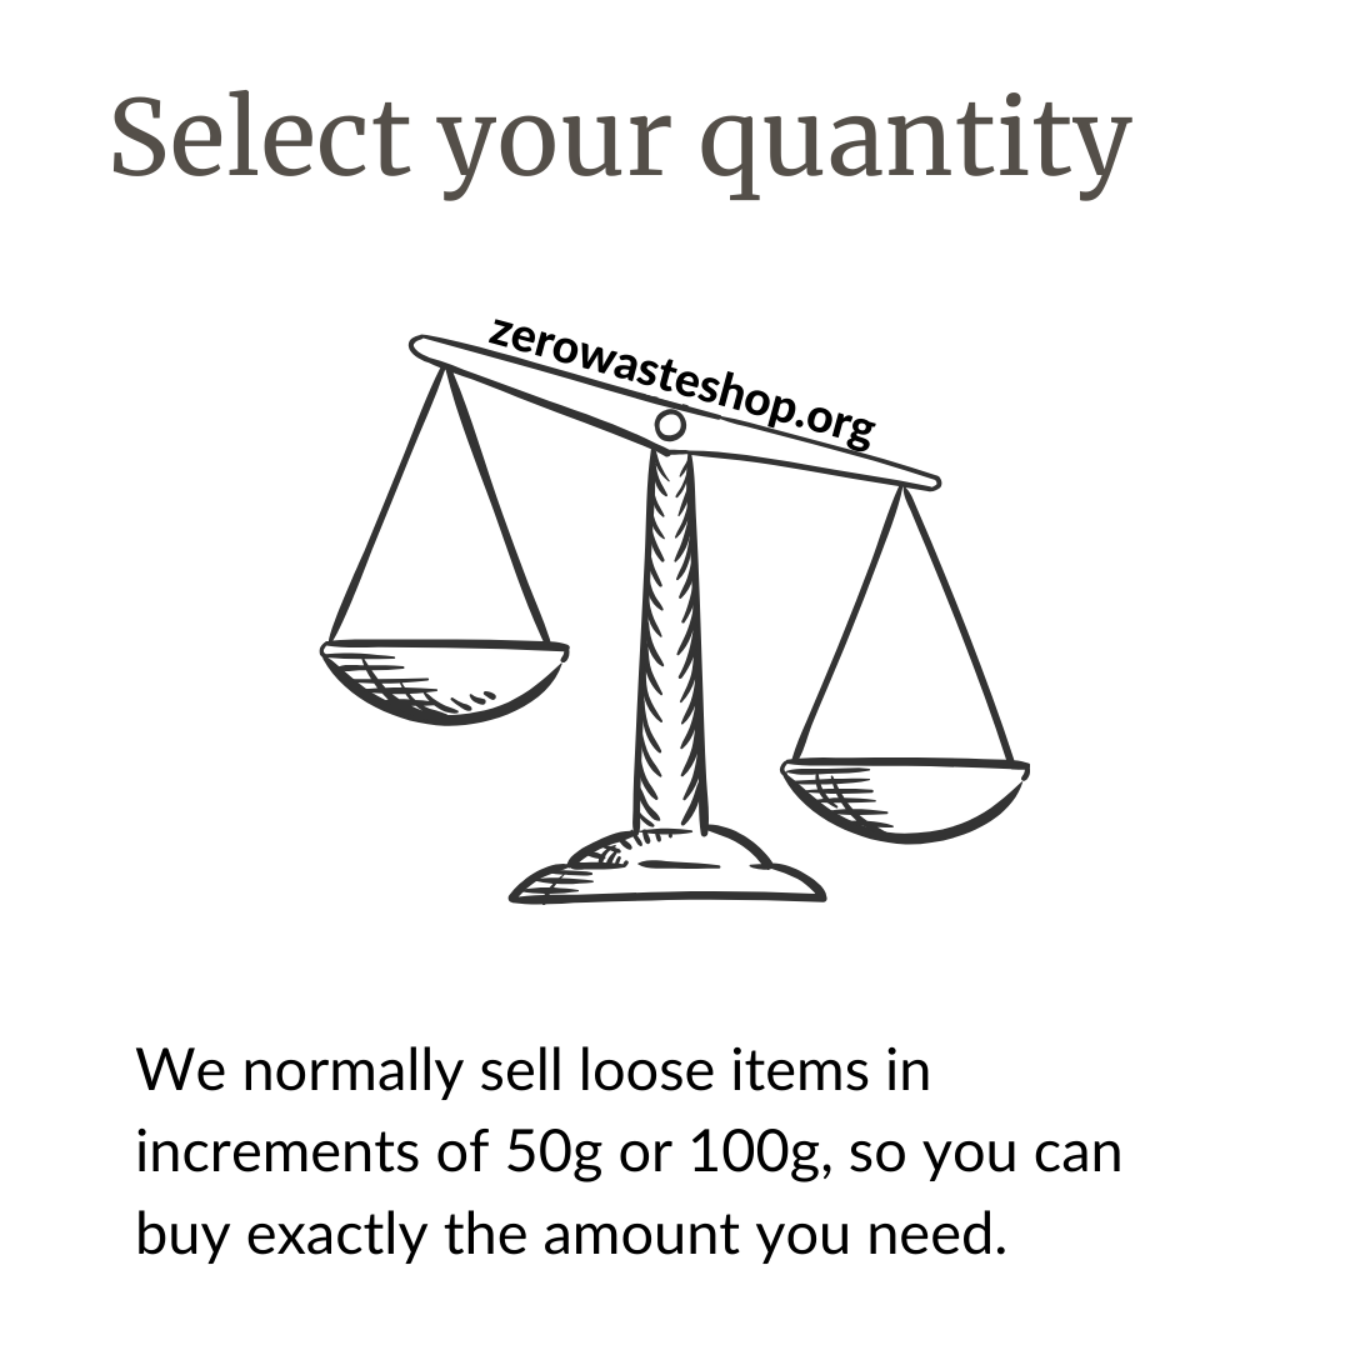 Select your quantity